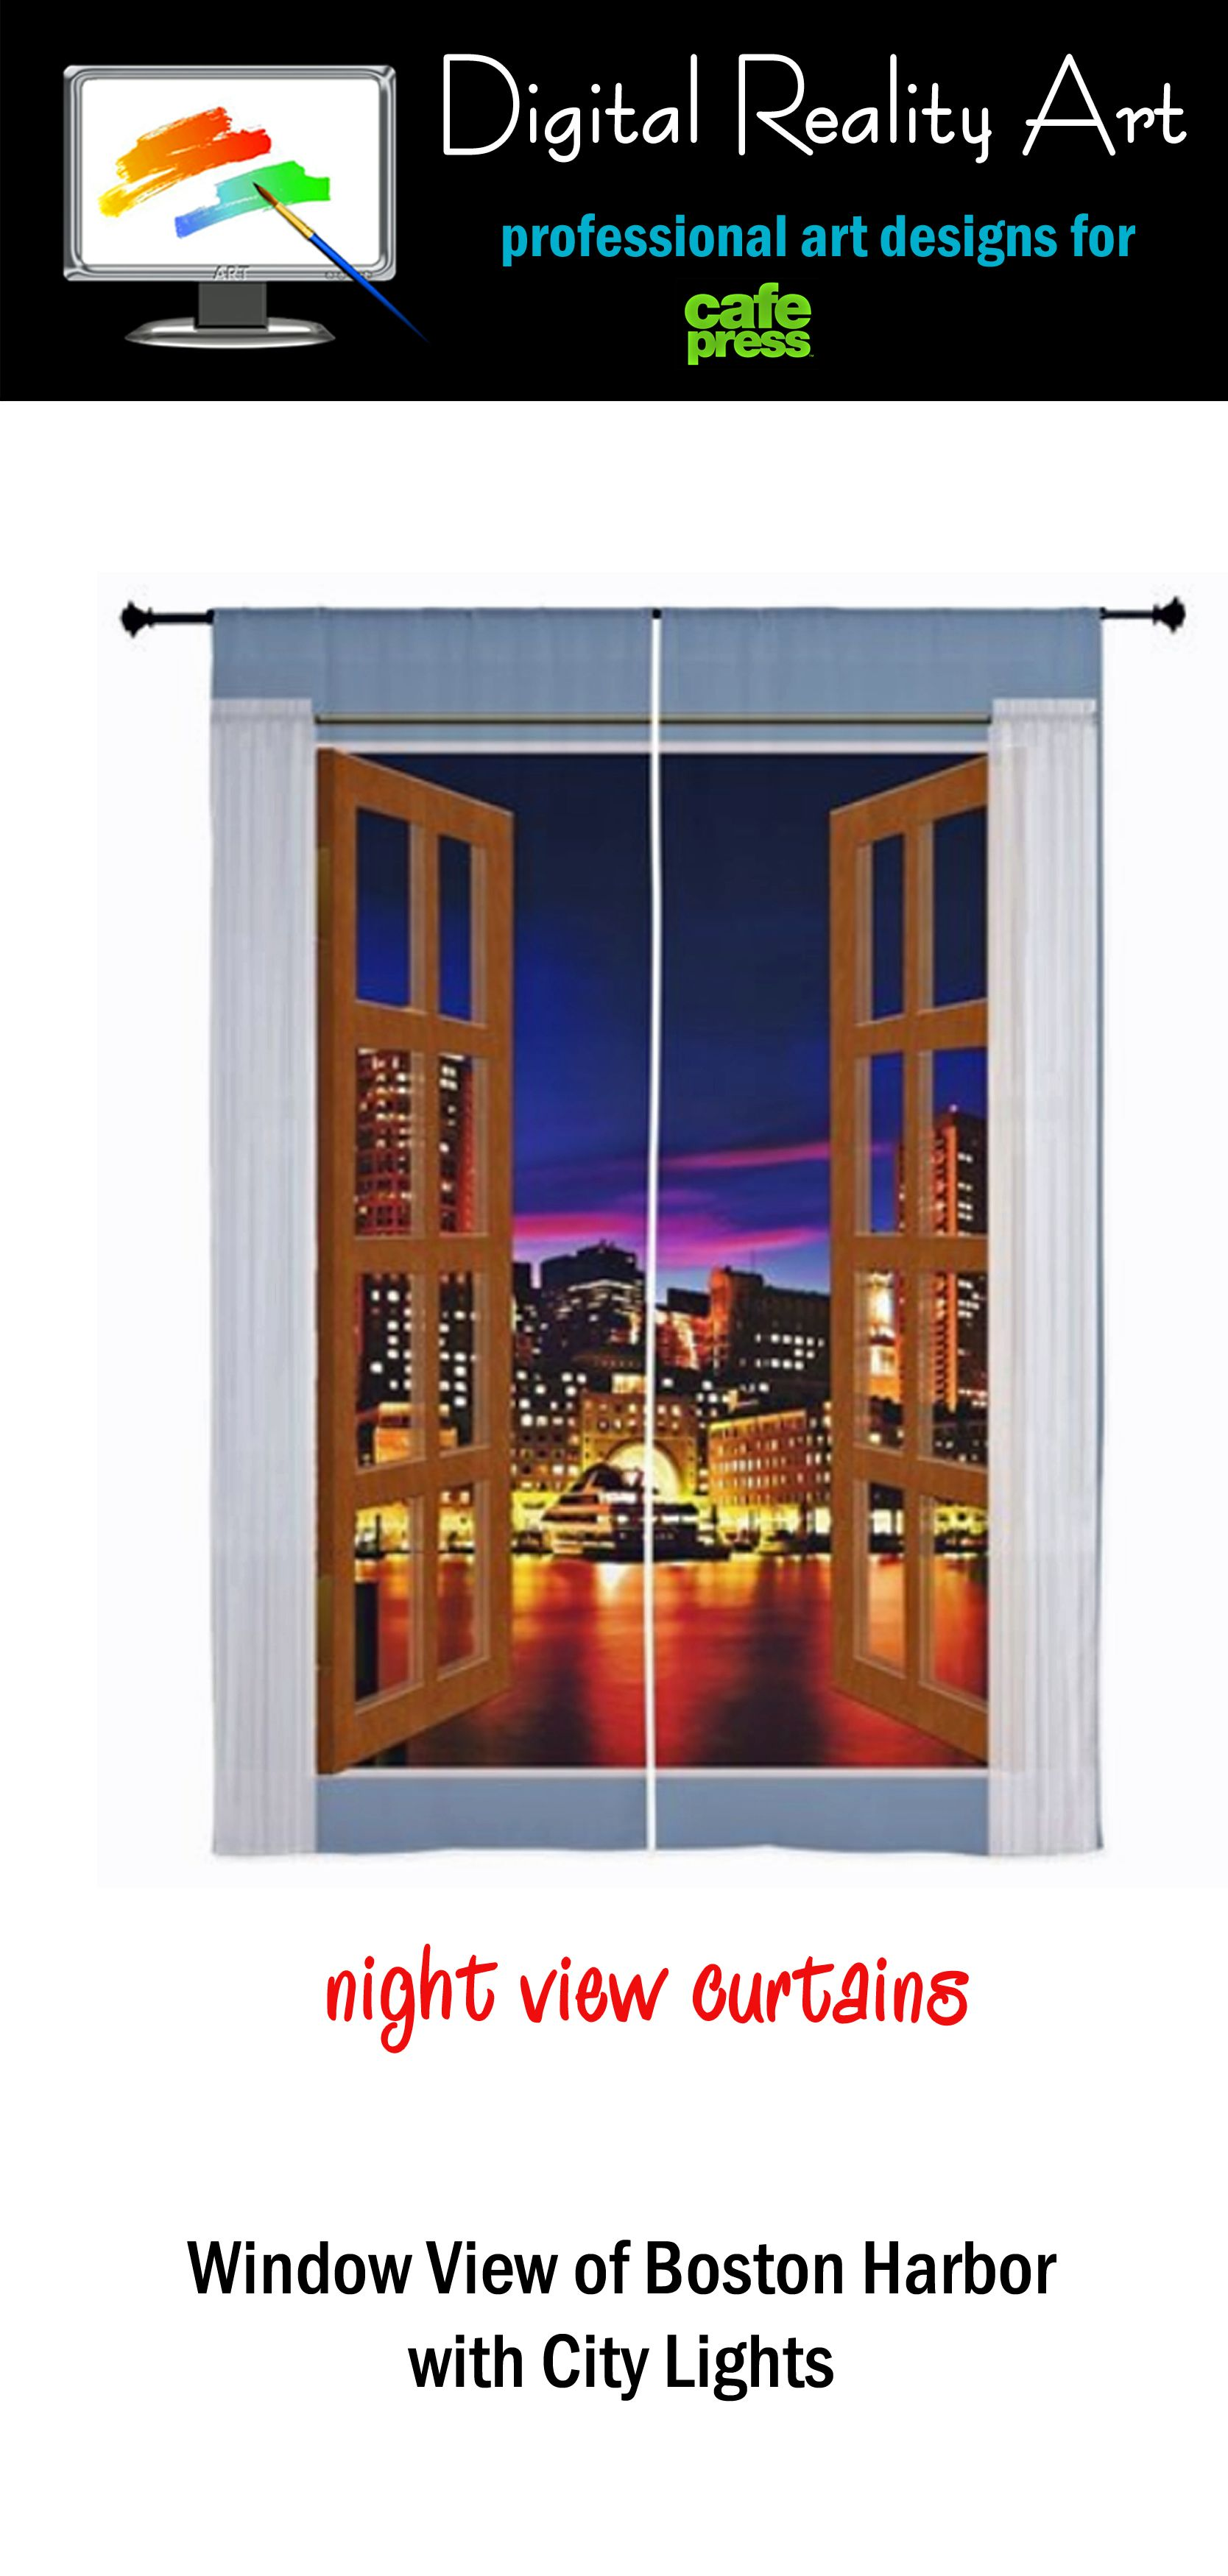 Got a room with no windows or a bad view? This series of curtains can give you access to exciting views around the world. Cities, nature, landscapes and more. Change your outlook on life.